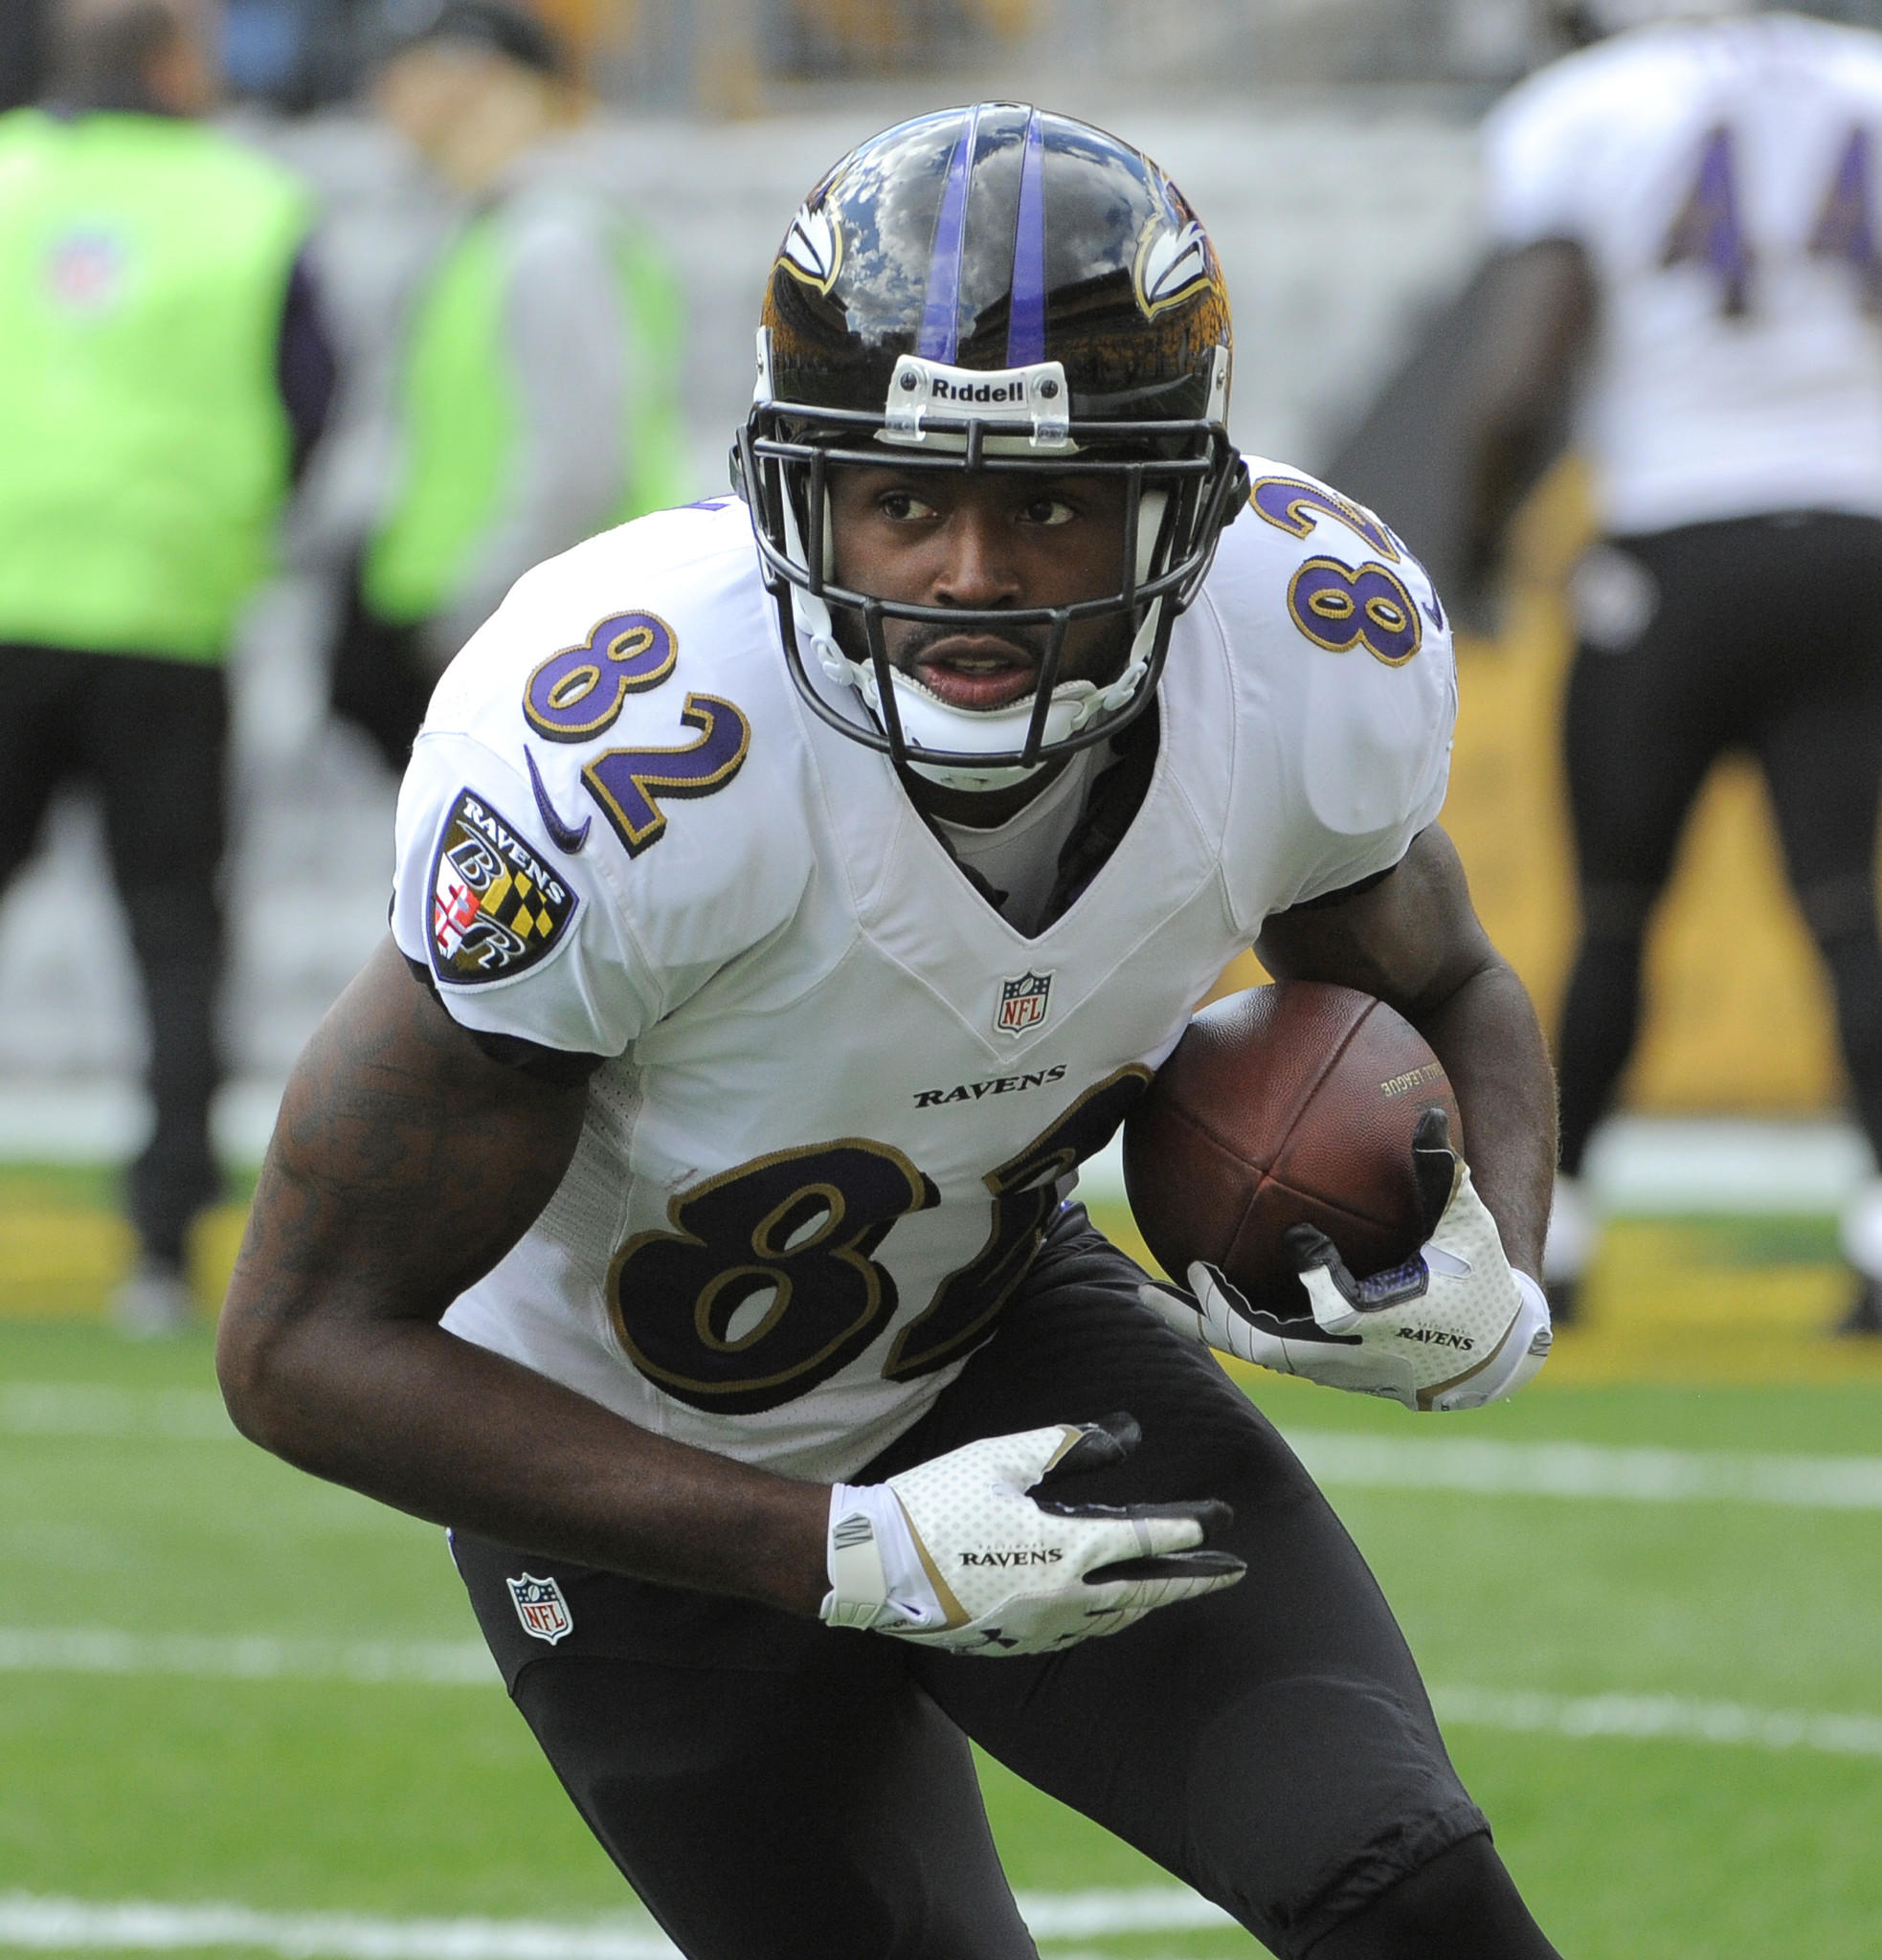 Ravens wide receiver Torrey Smith grabs a pass during warmups in October.